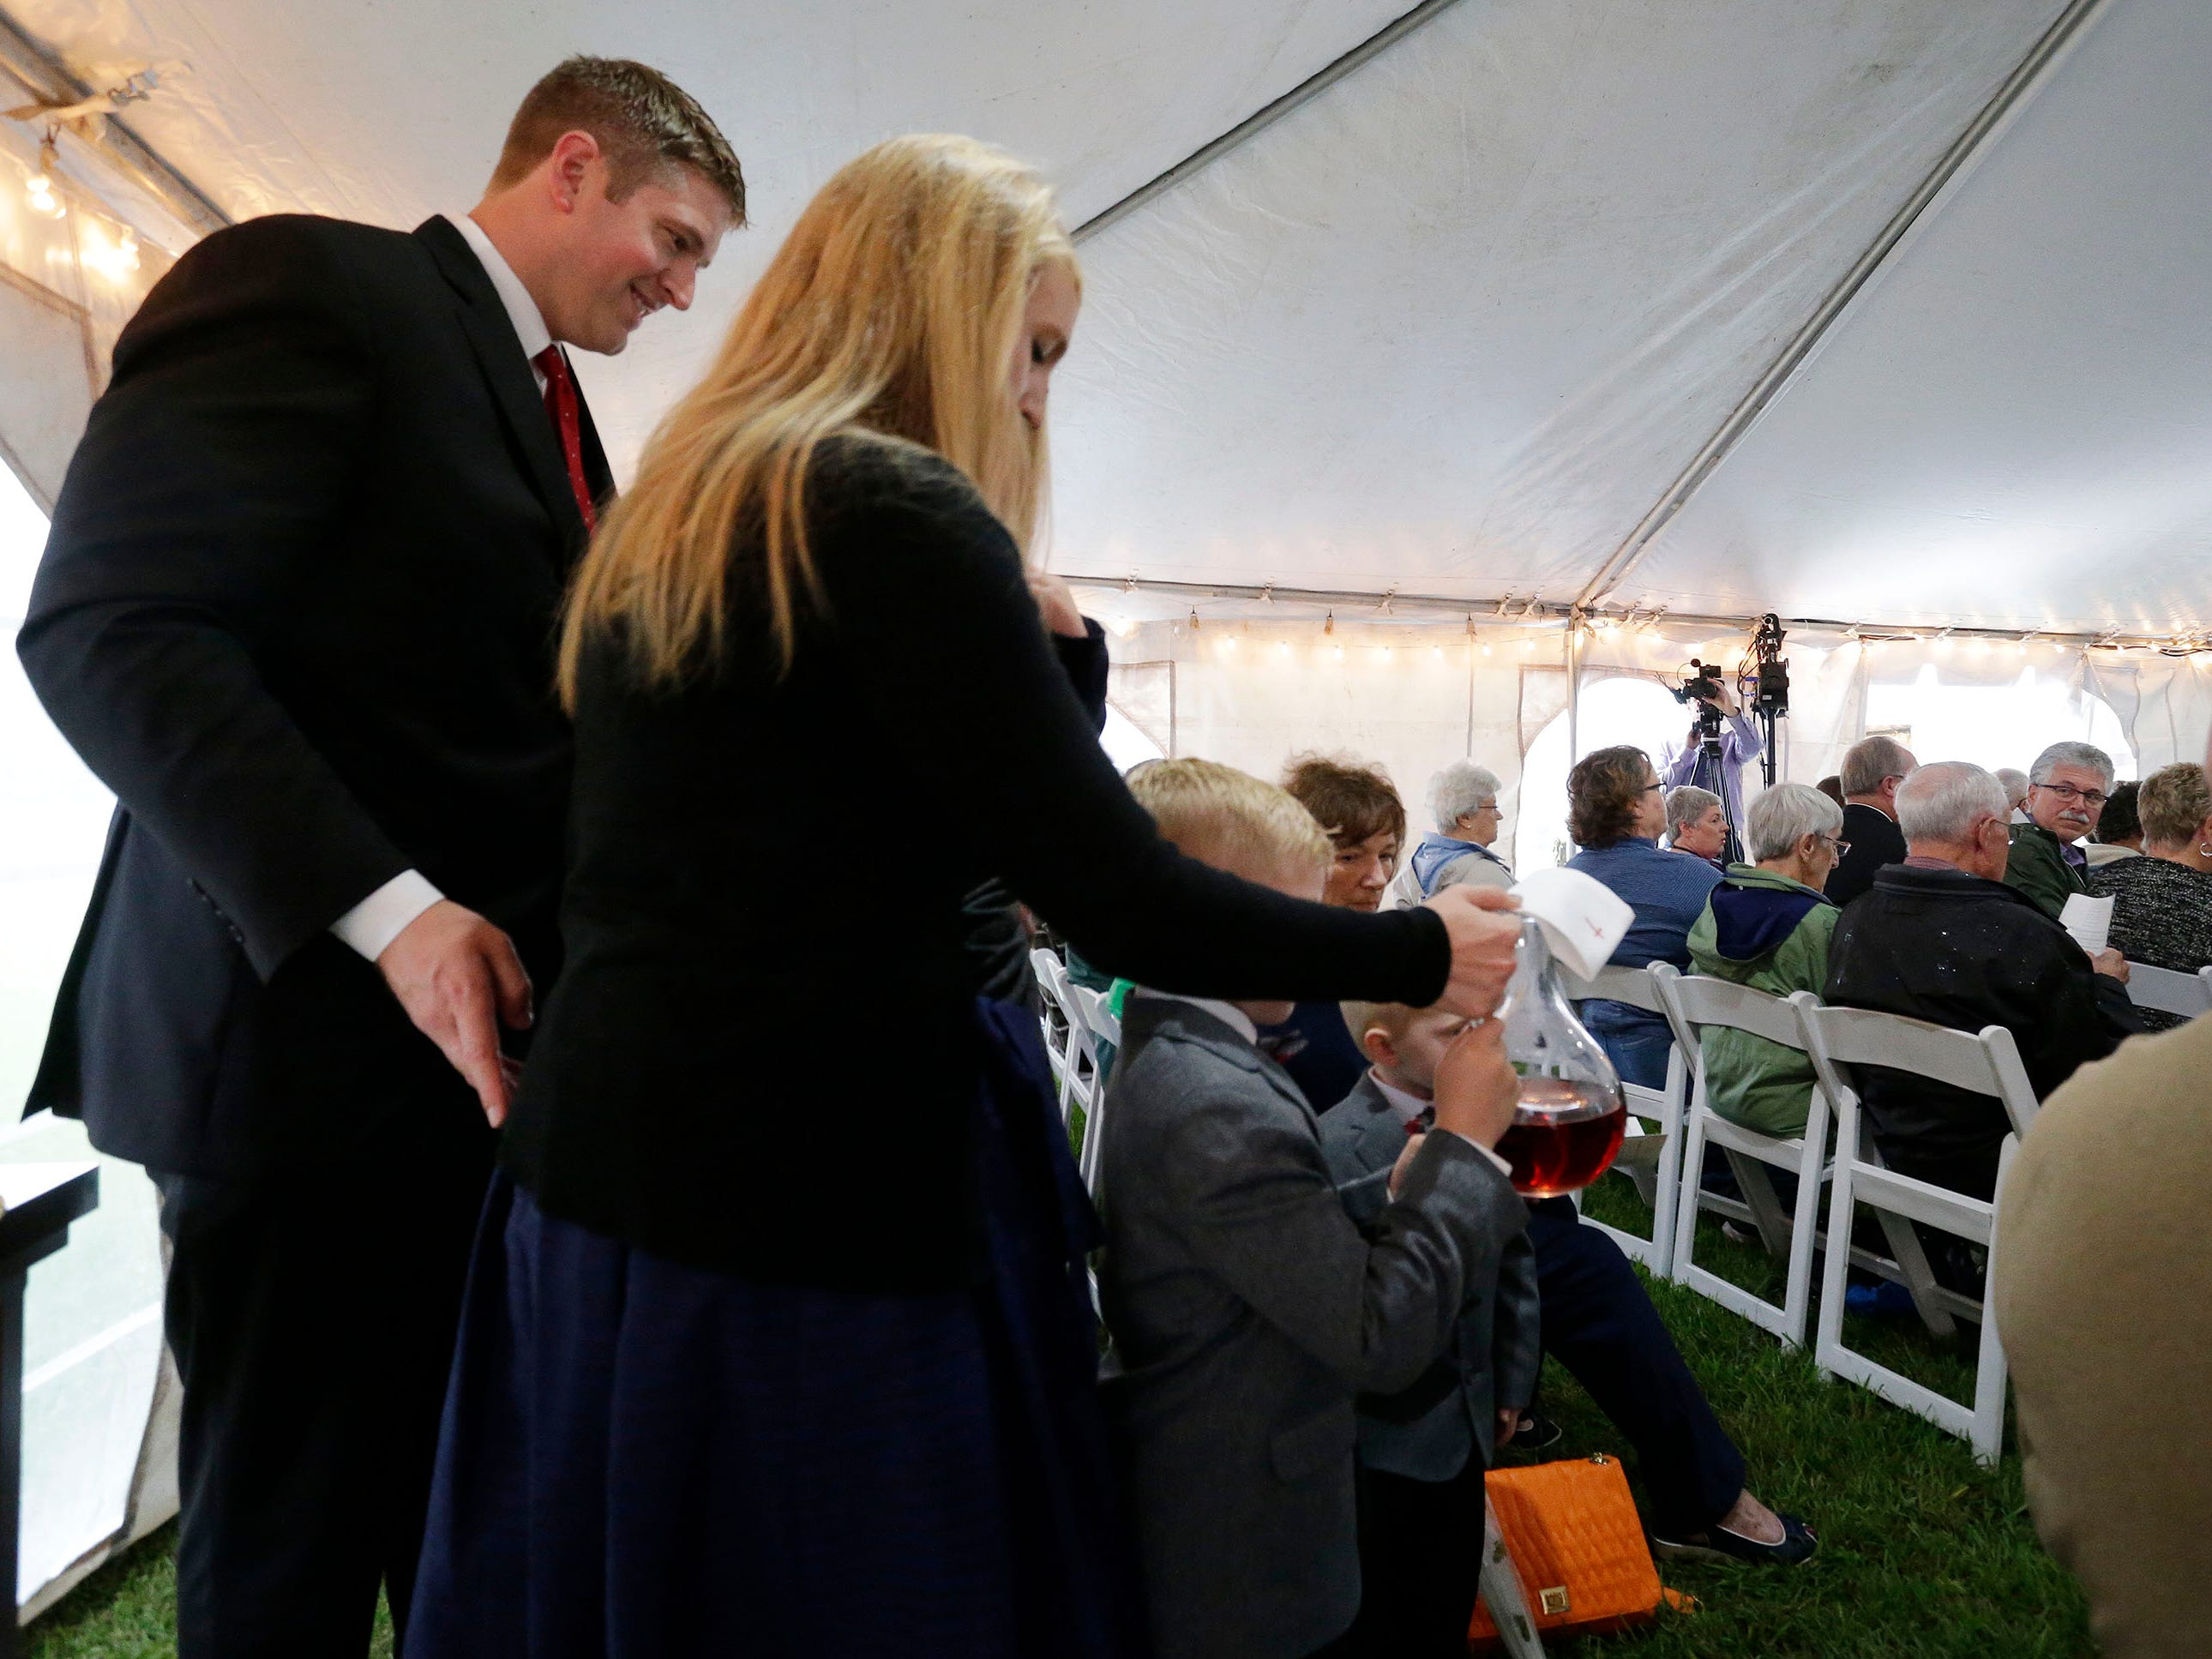 HSHS St. Nicholas Hospital CEO Justin Selle helps his family carry the sacrements during a Mass of Celebration for him at the hospital complex, Wednesday, September 19, 2018, in Sheboygan, Wis.